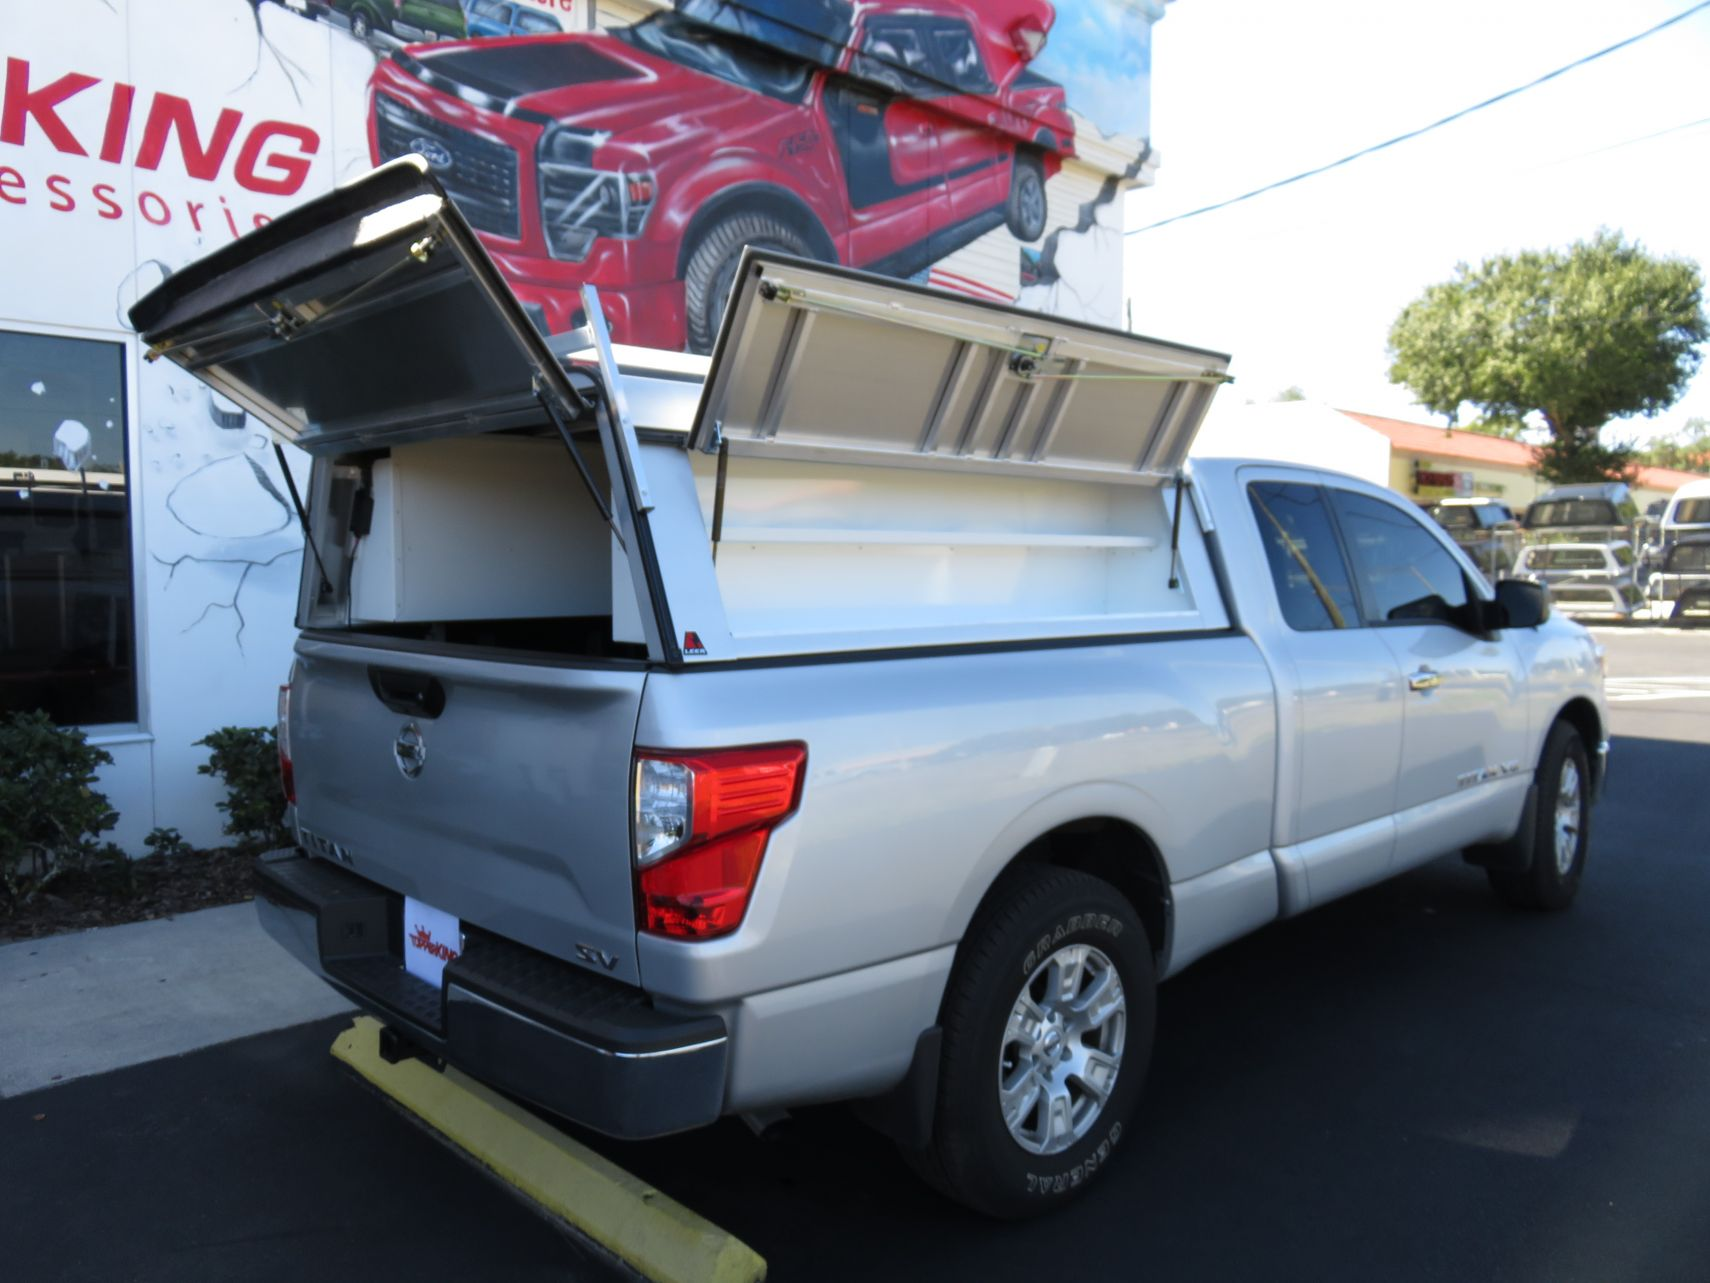 2018 Silver Nissan Titan LEER DCC Custom Hitch by TopperKING in Brandon, FL 813-689-2449 or Clearwater, FL 727-530-9066. Call today to start on your truck!